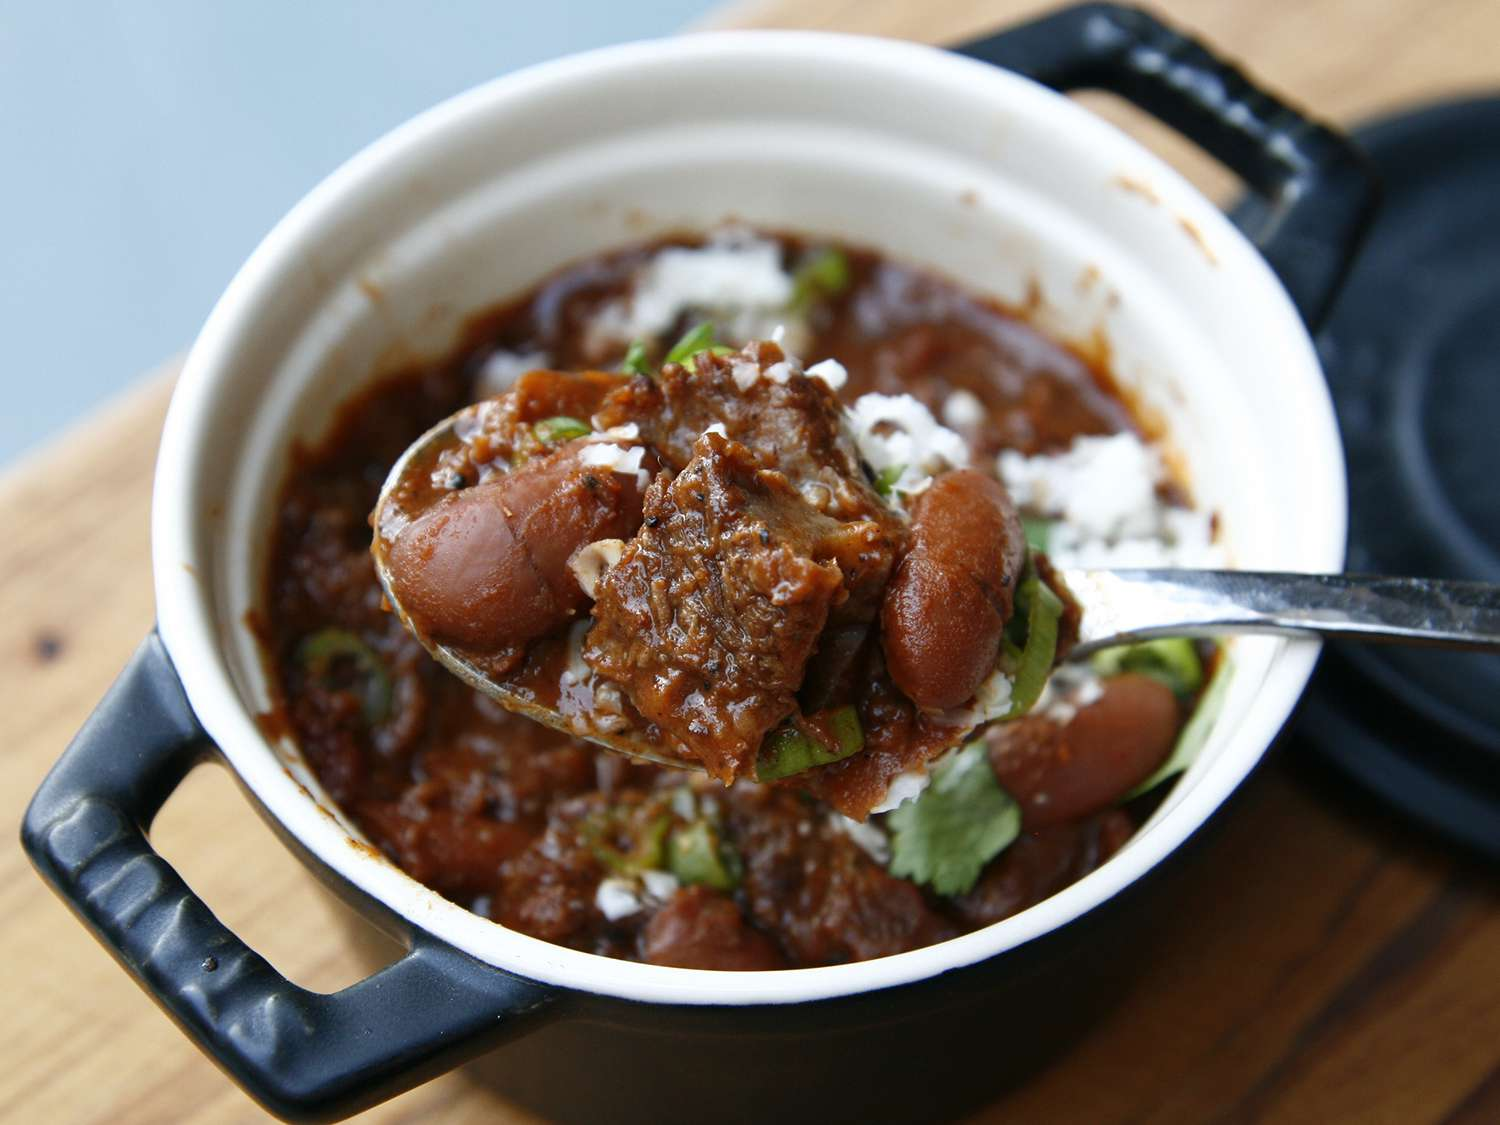 A small crock of The Best Chili Ever, a Serious Eats chili recipe with beans, cilantro and cheese.